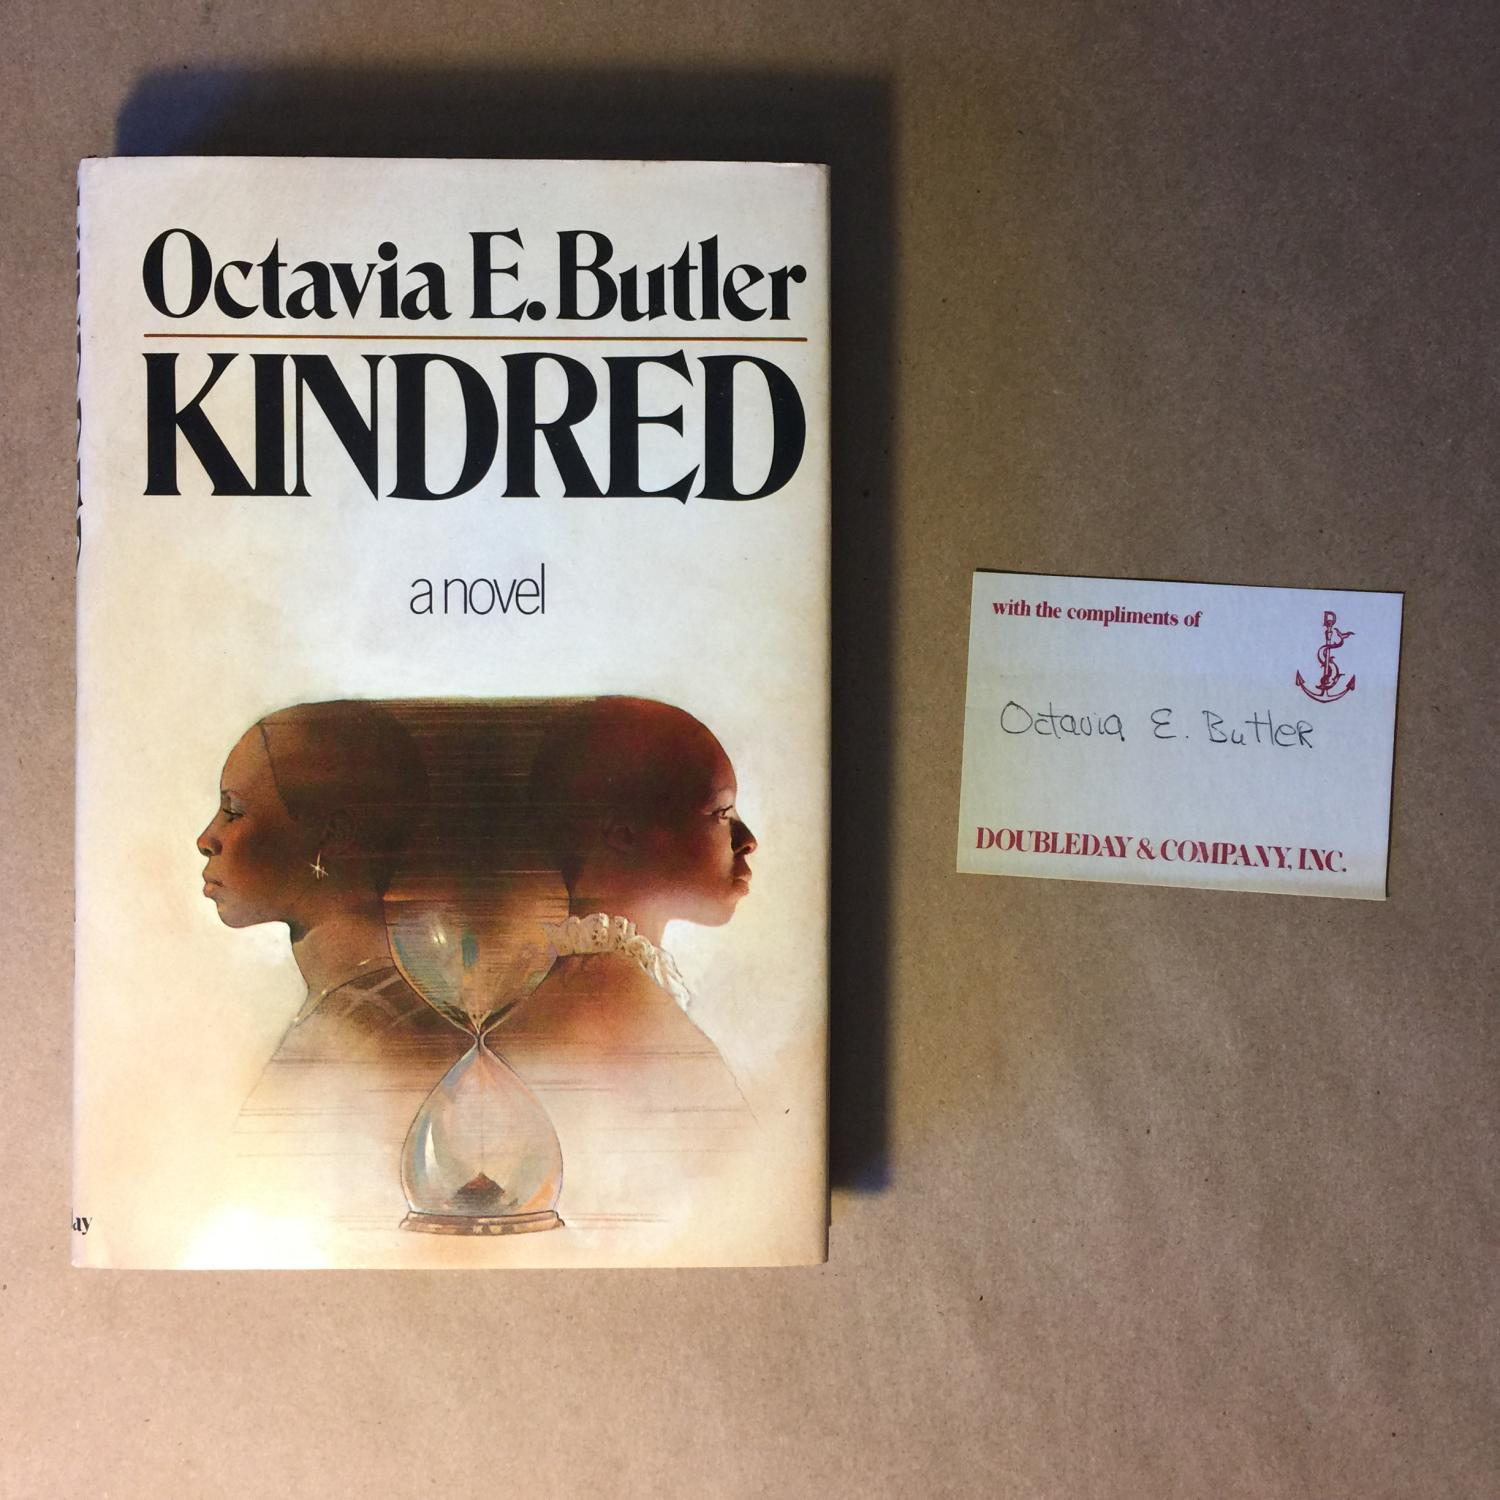 an analysis of octavia butlers novel kindred Octavia e butler's novel titled kindred was first published in 1979, and it is a tale  that  analysis emerges in the form of constant gothic loops in butler's kindred,.